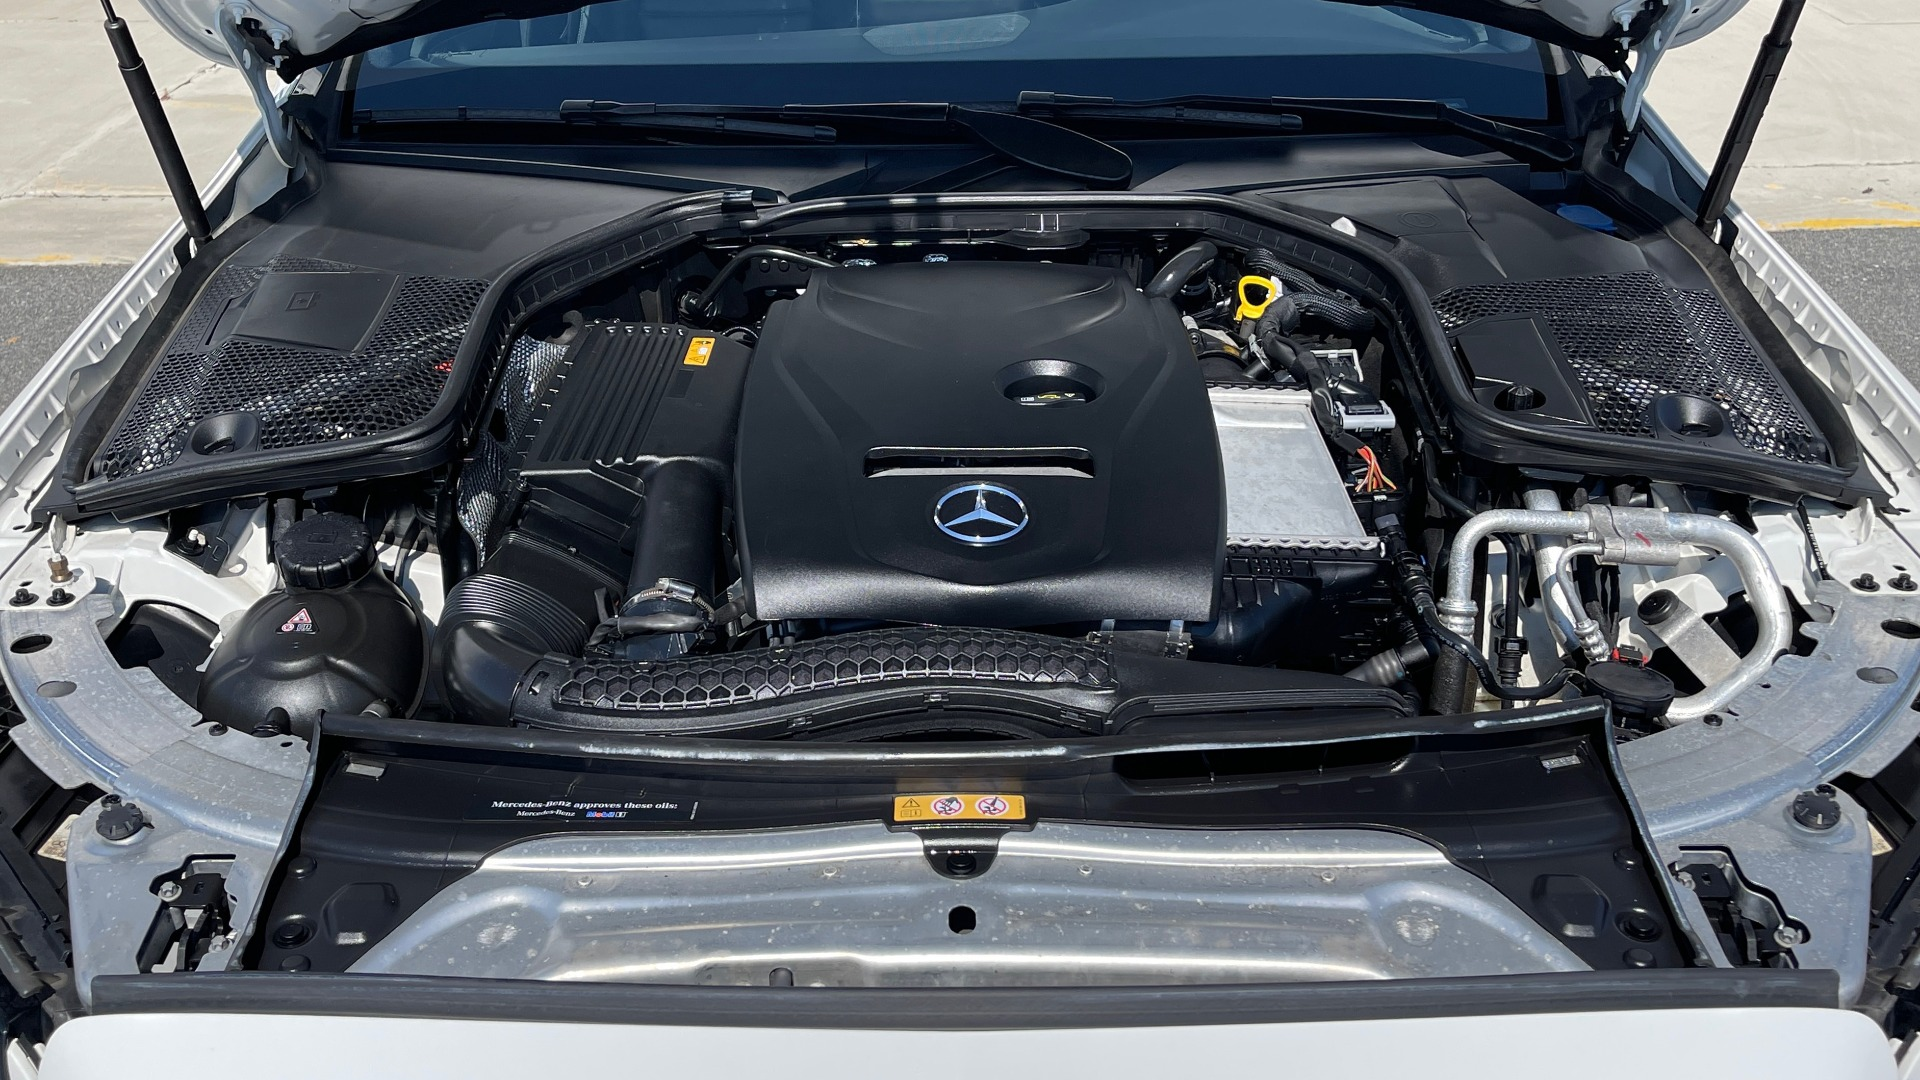 Used 2018 Mercedes-Benz C-CLASS C 300 PREMIUM / APPLE CARPLAY / KEYLESS-GO / SUNROOF / REARVIEW for sale $32,995 at Formula Imports in Charlotte NC 28227 8